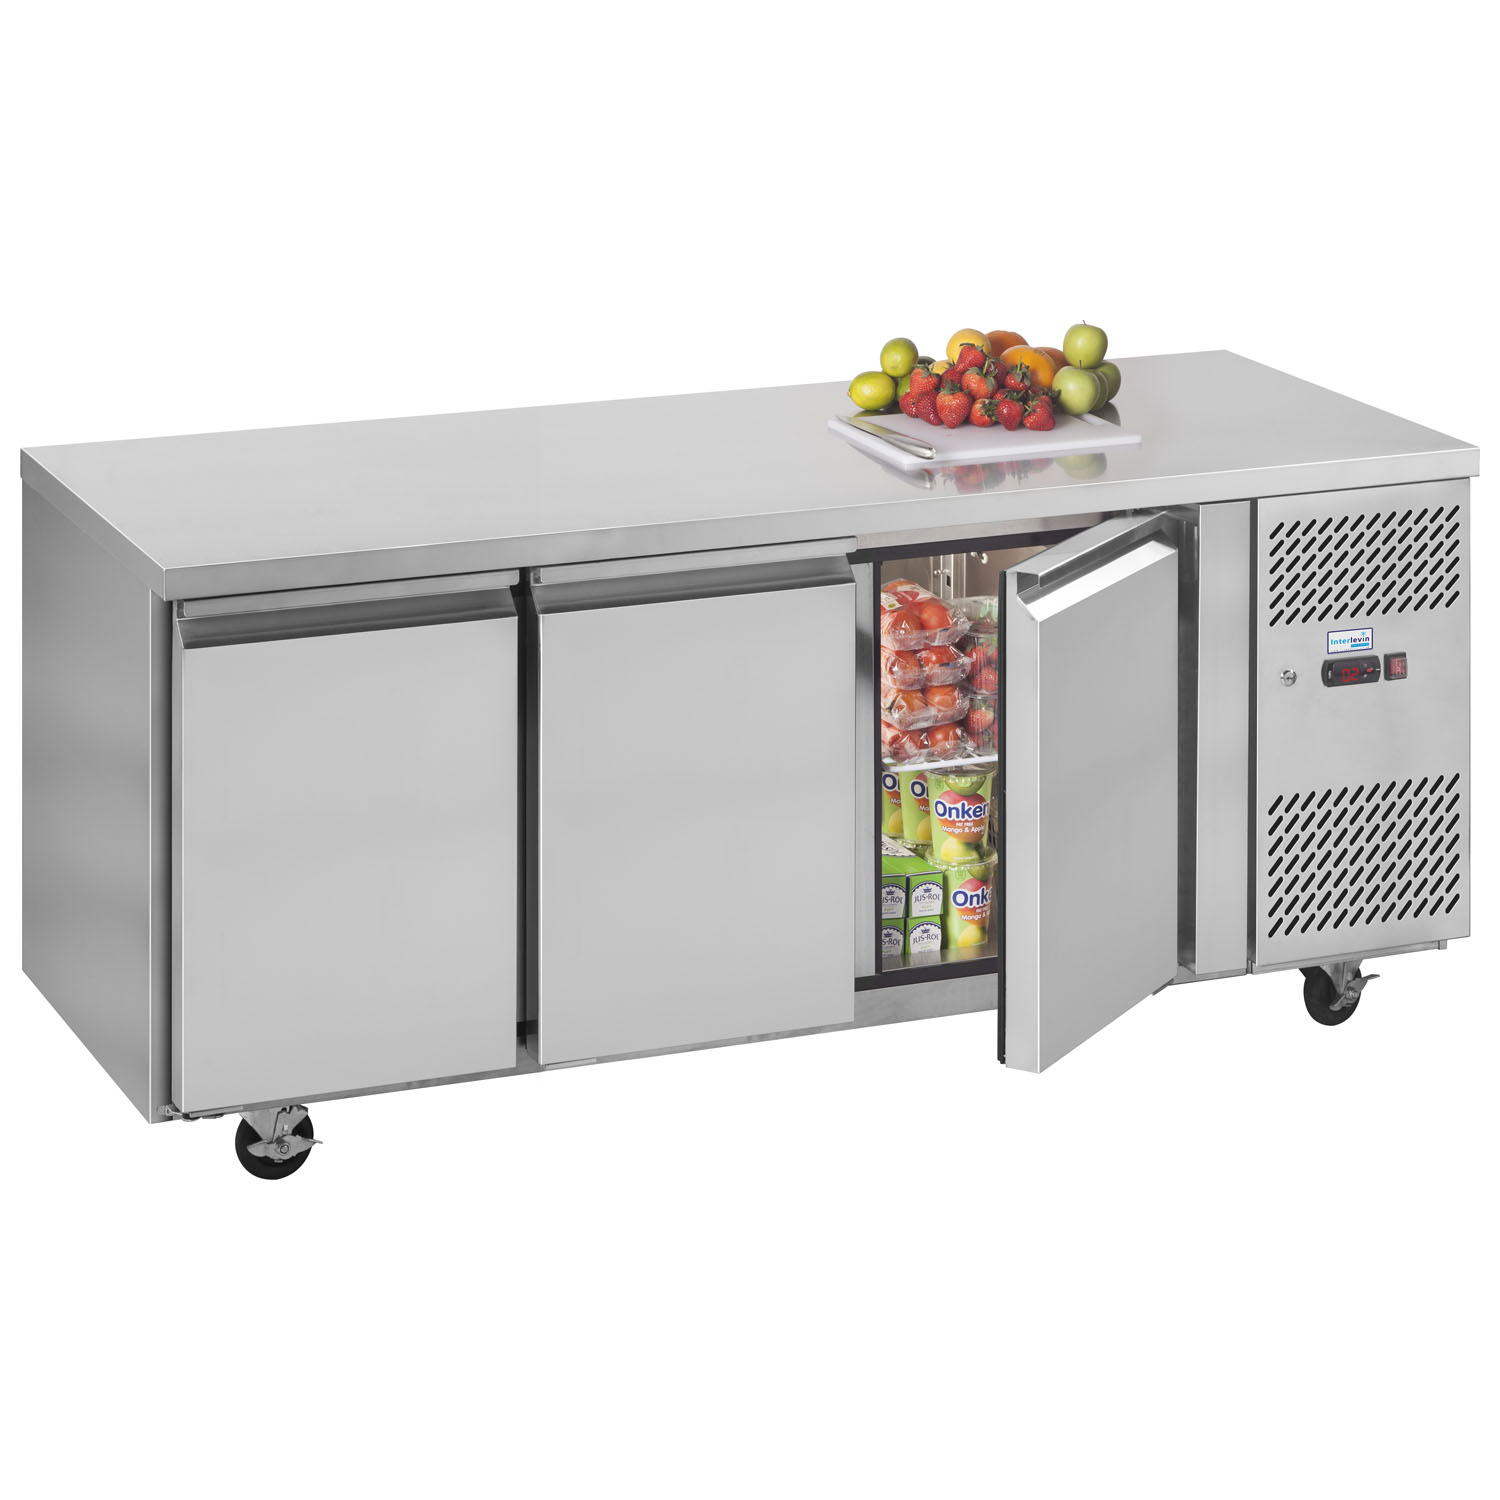 Interlevin PH30 Gastronorm Stainless Steel Counter 3-Door Chiller stocked